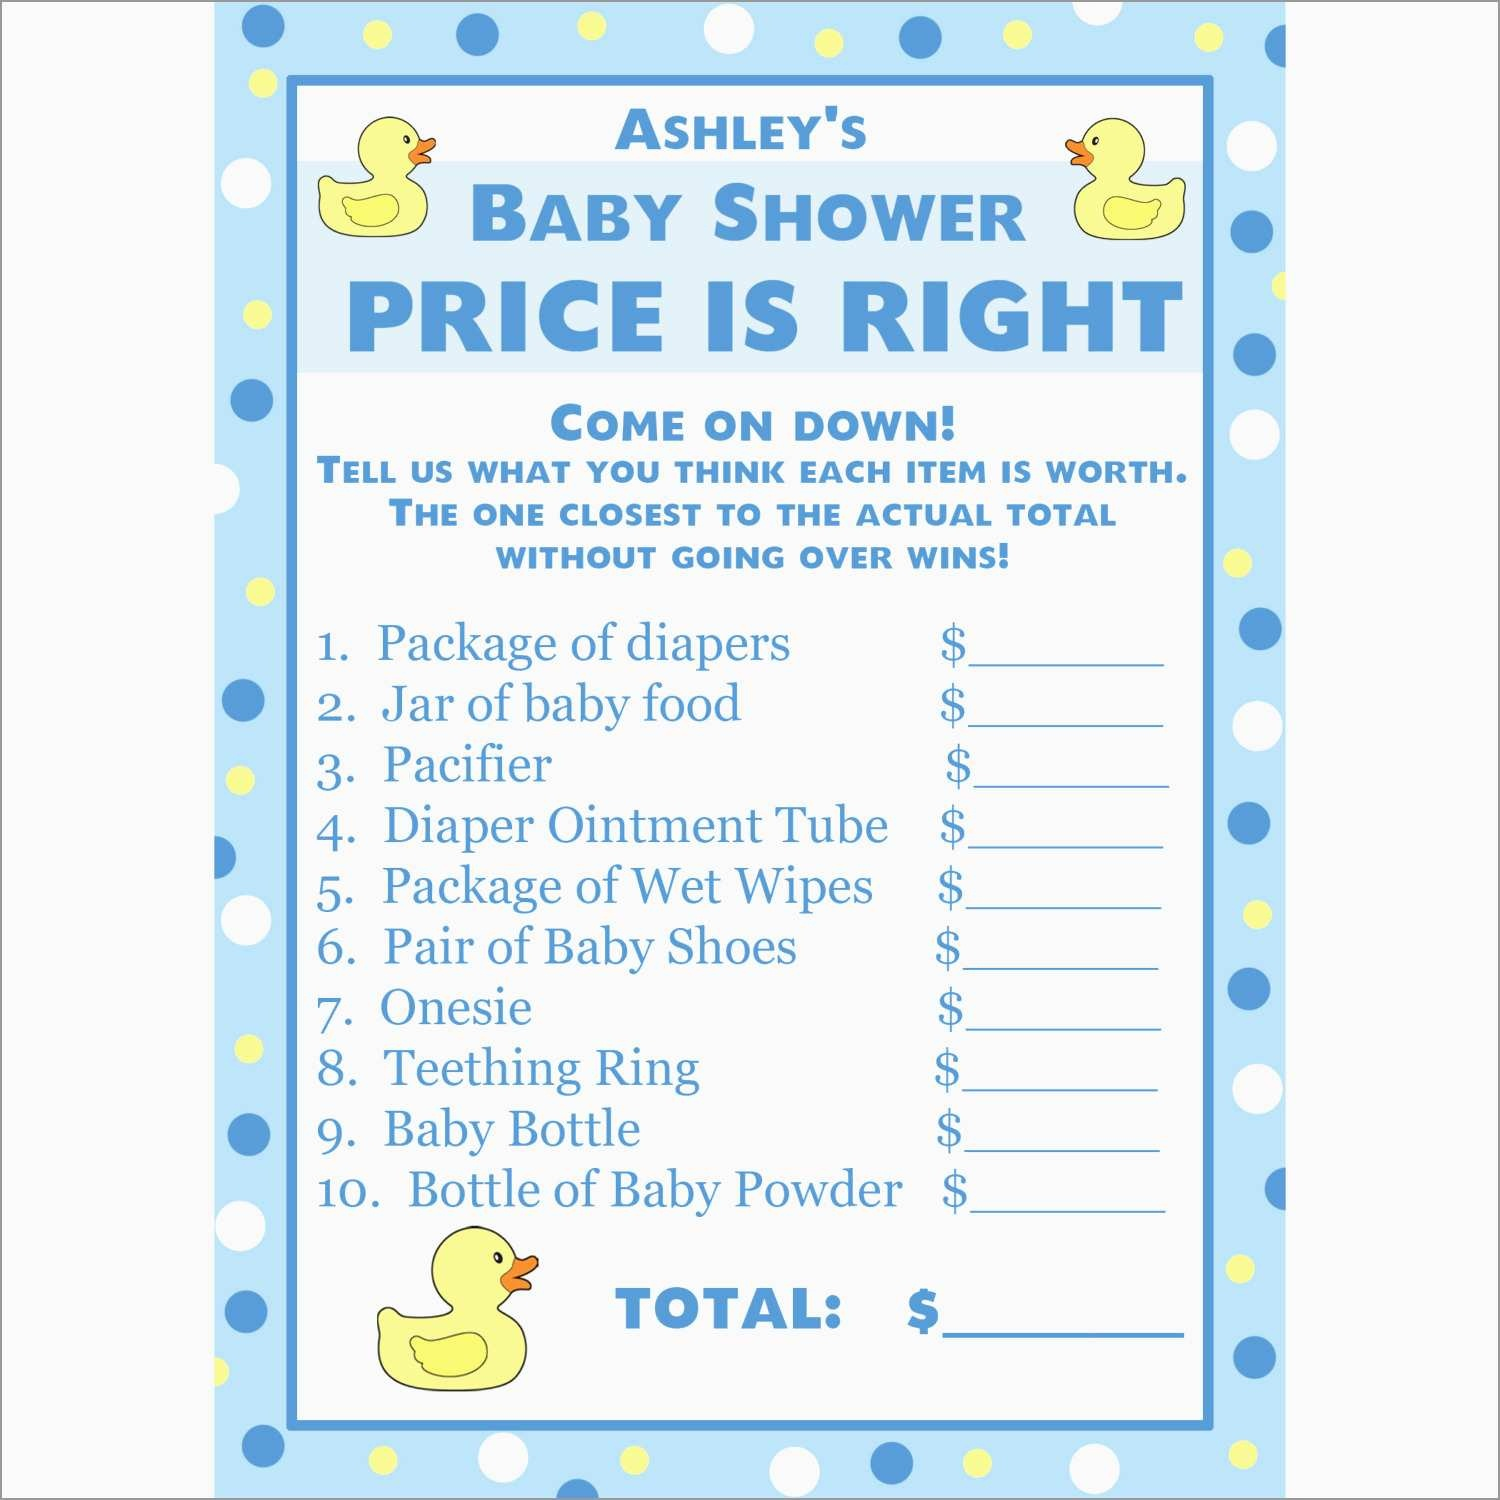 Elegant Price Is Right Baby Shower Game Free Template | Best Of Template - Free Printable Price Is Right Baby Shower Game